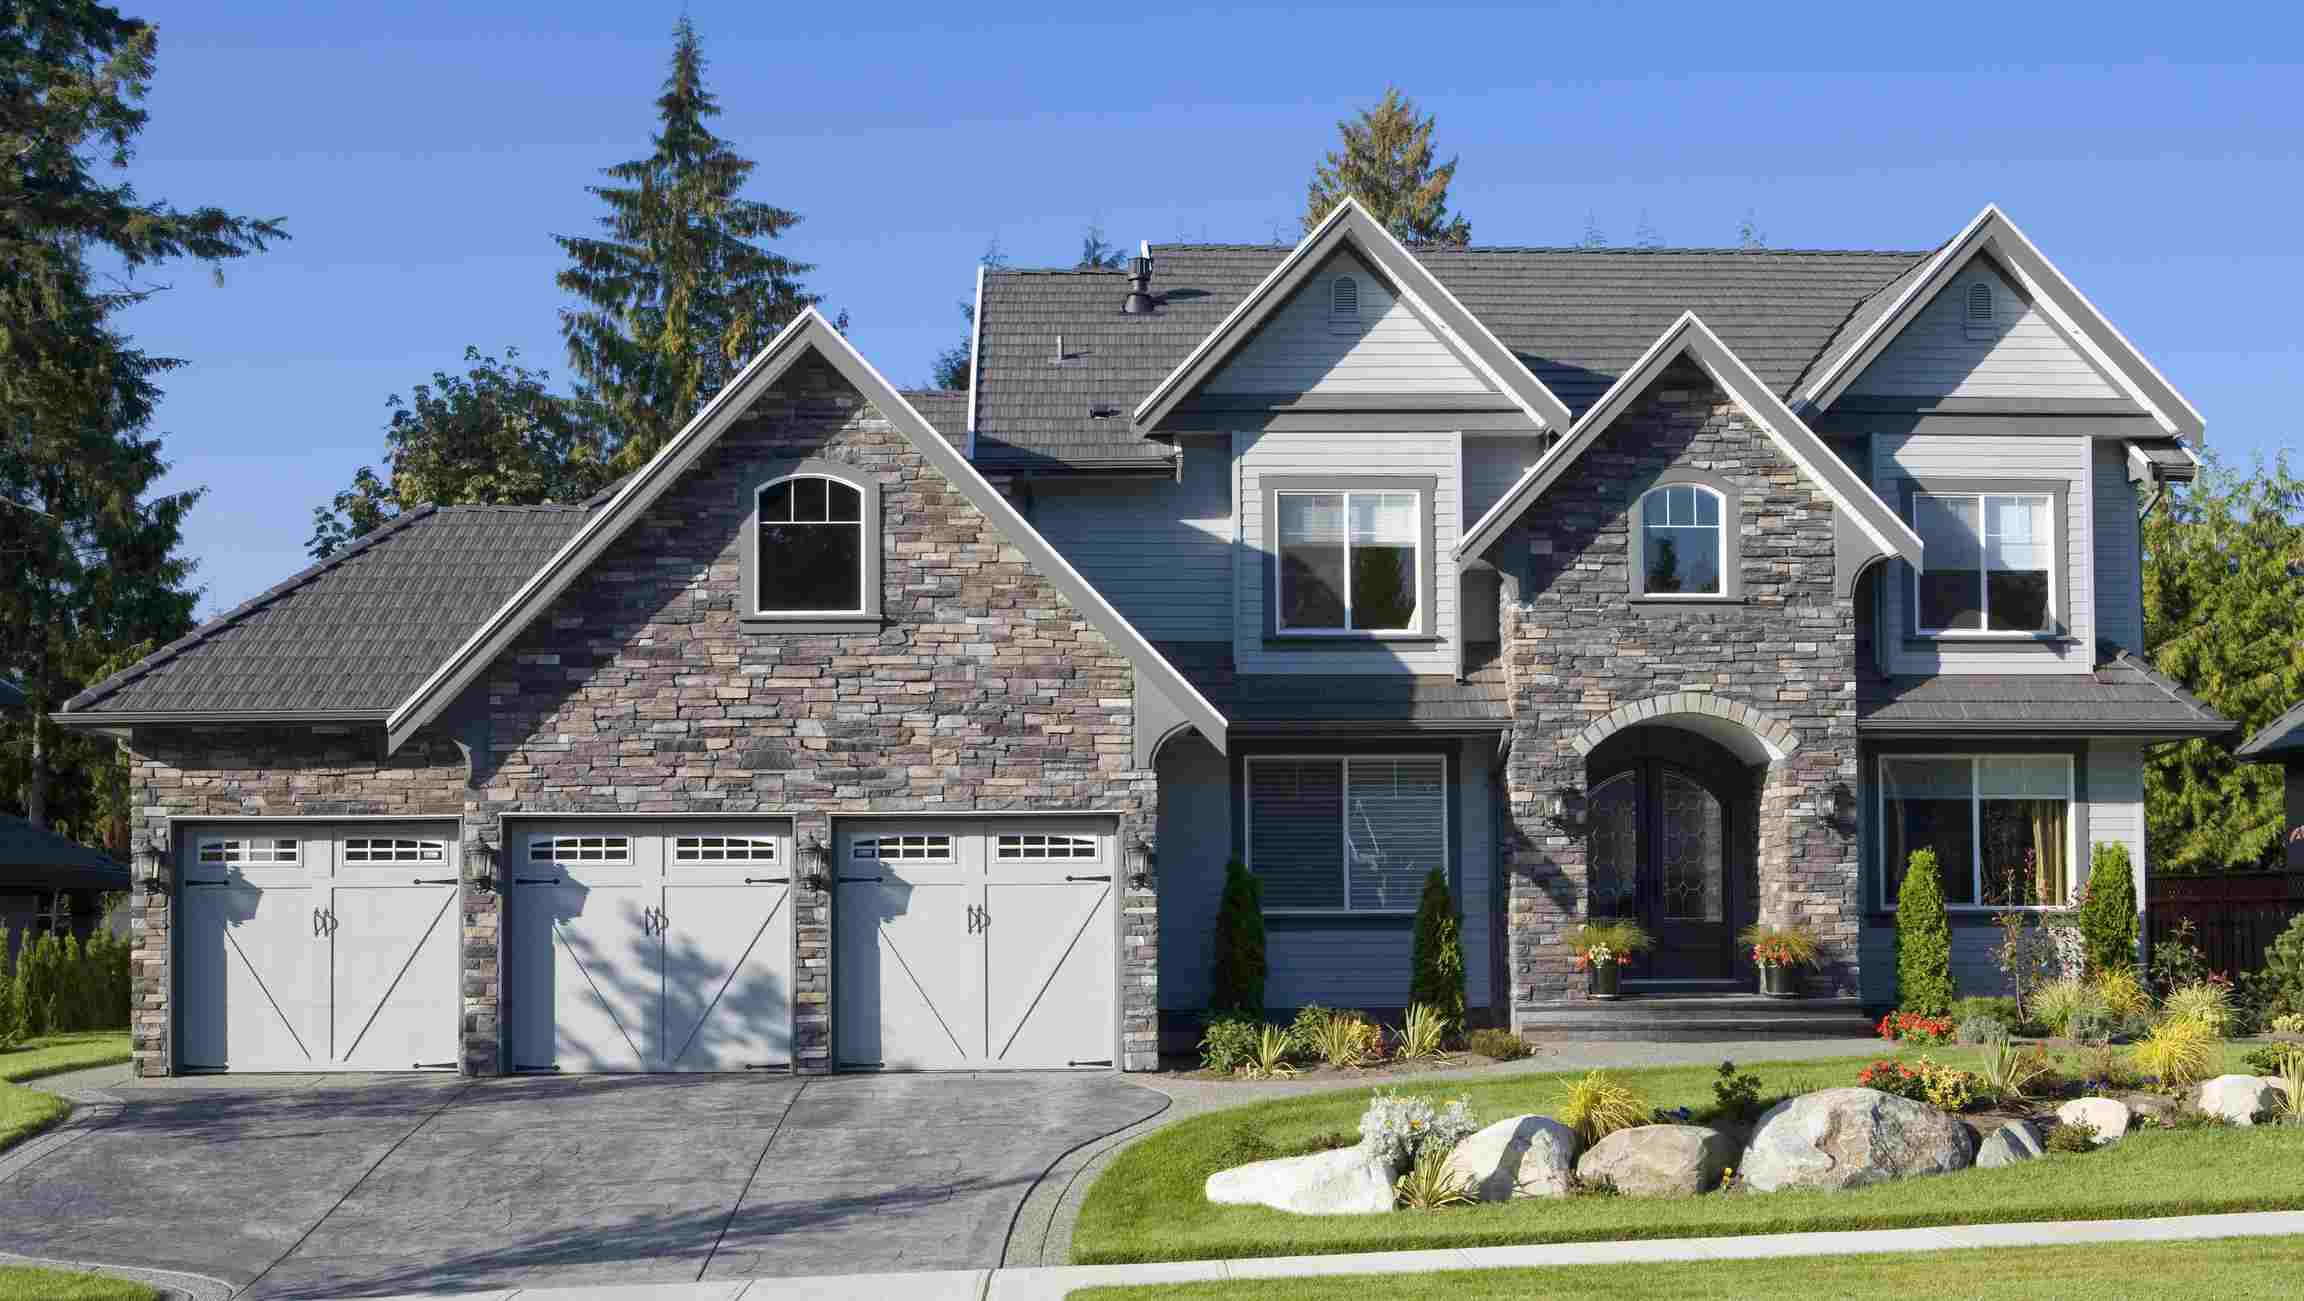 Property with stone garage and house entry, stone driveway, and boulders in an island planting bed.